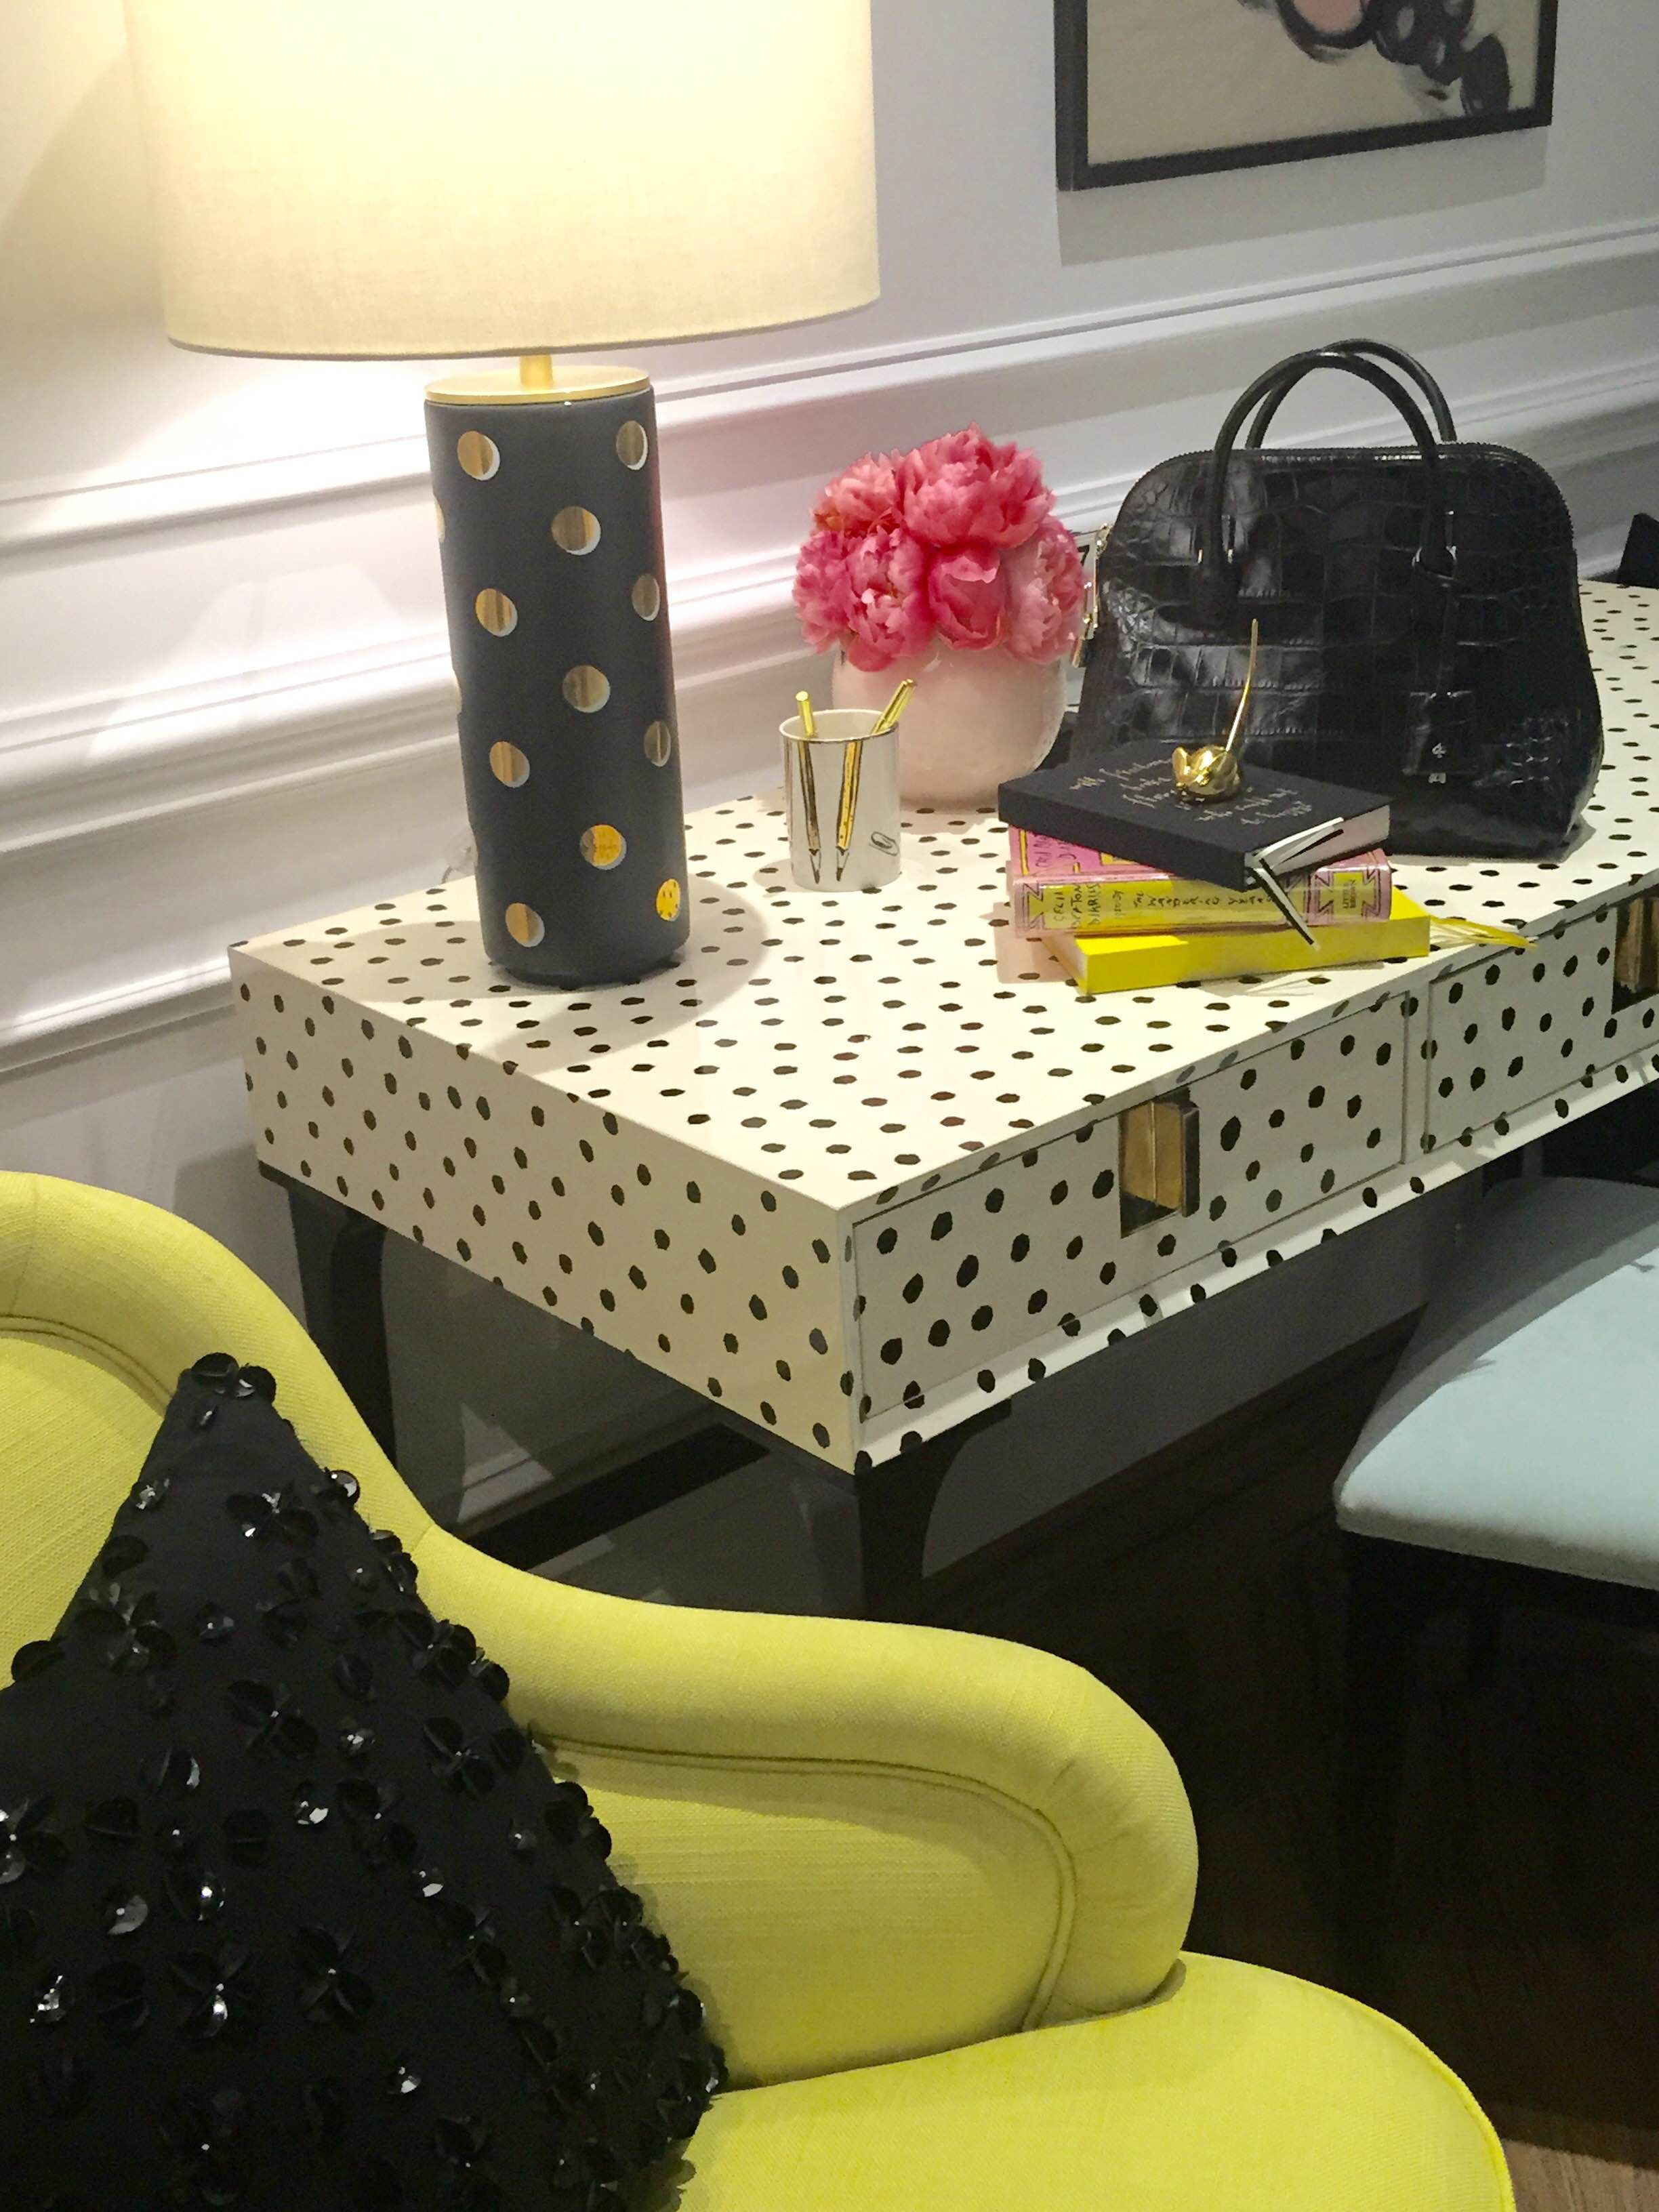 Trend: A Bit of Whimsy. The Downing Desk by Kate Spade NY for EJ Victor. 115 S. Lindsay Street. #HPMKT #hpmktSS #hpmktcoveredinkryptonhome